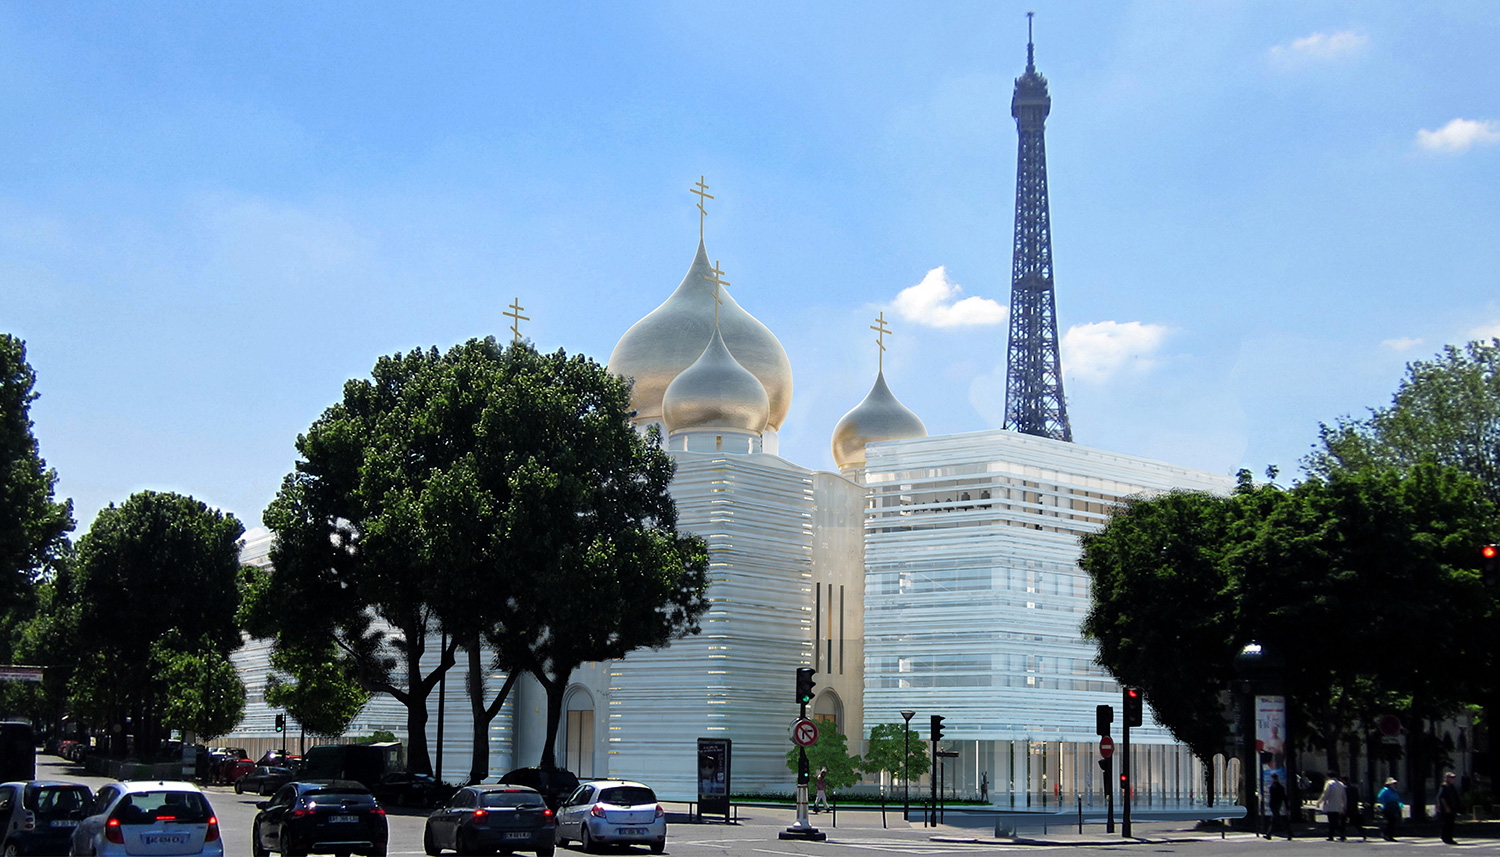 centre-orthodoxe-spirituel-russe-paris-7e